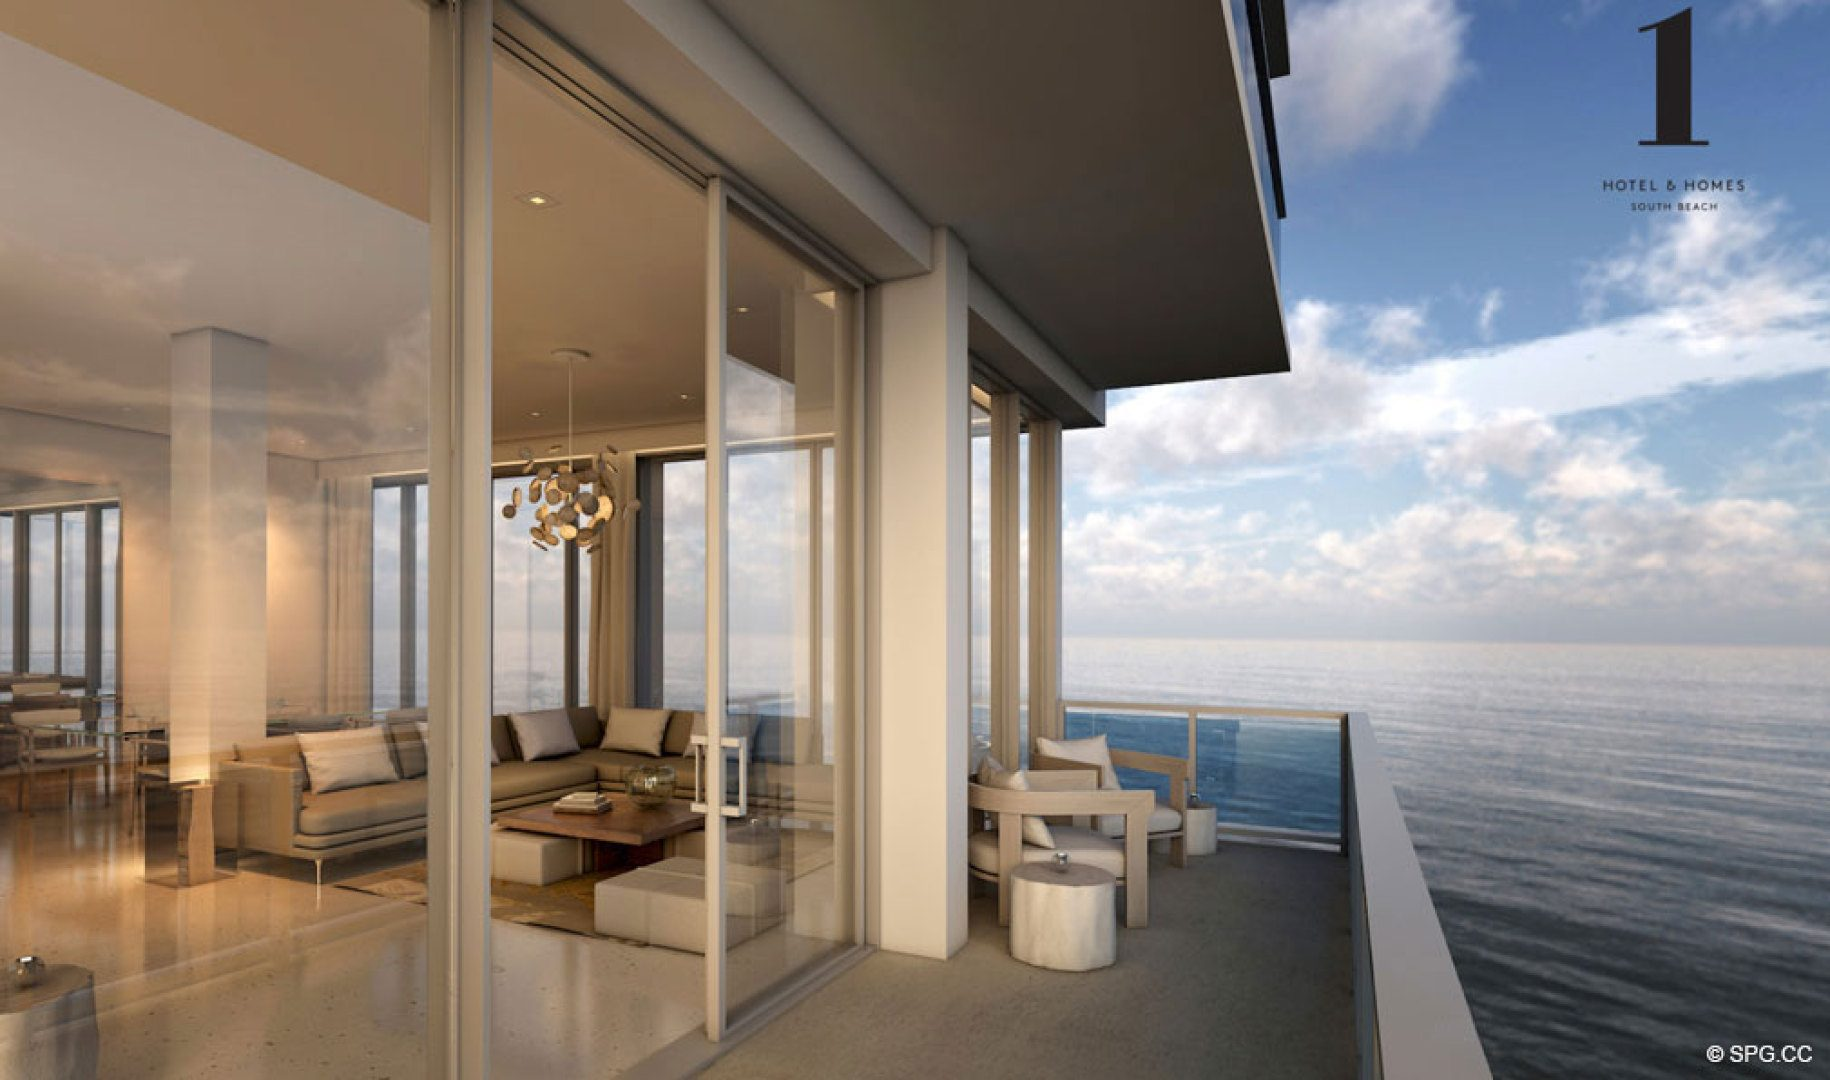 Penthouse Views at 1 Hotel & Homes South Beach, Luxury Oceanfront Condominiums Located at 2399 Collins Ave, Miami Beach, FL 33139